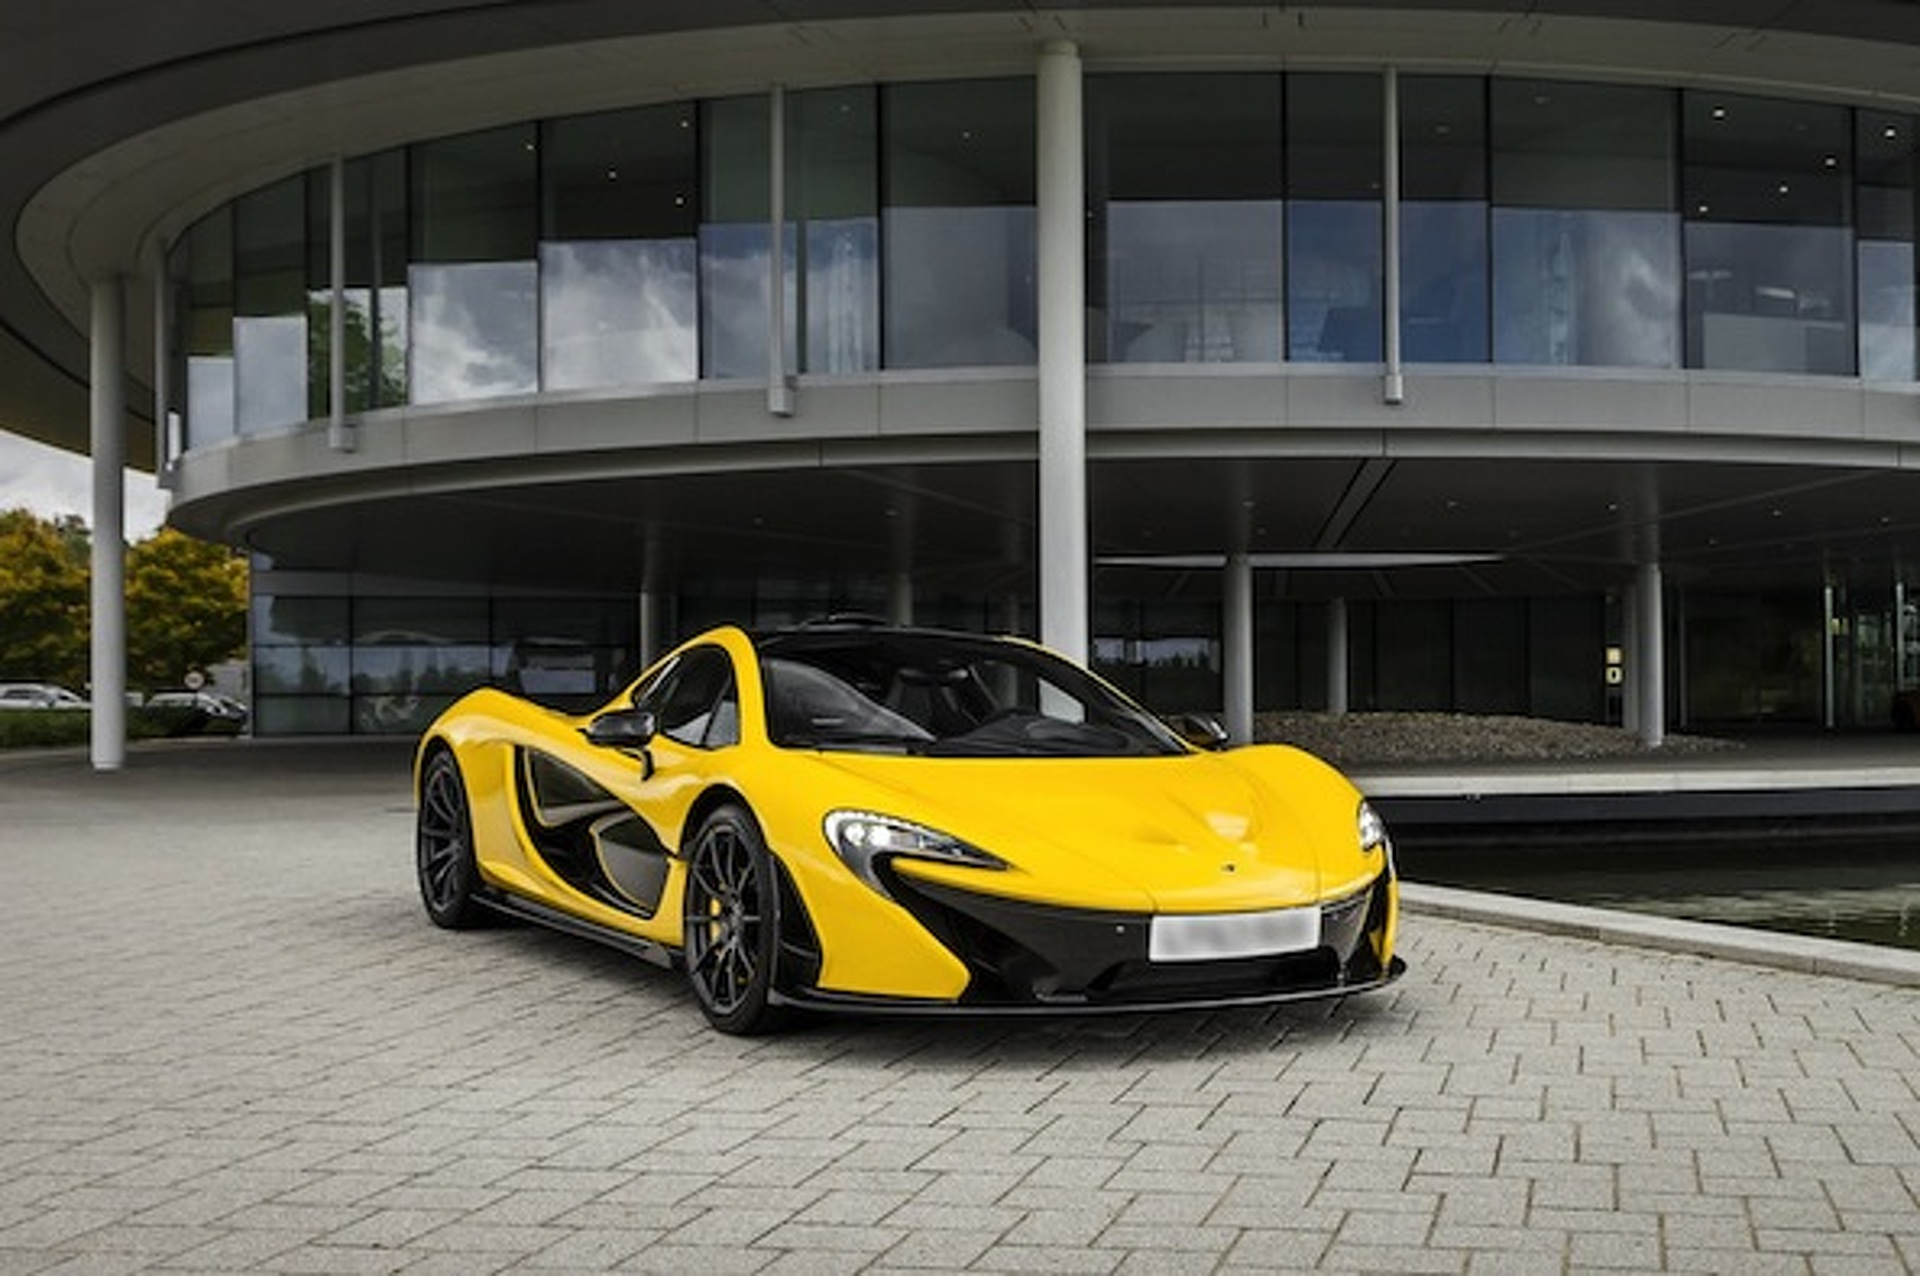 McLaren Details P1 Hypercar: 0-62MPH in 2.8 Seconds, 28 MPG